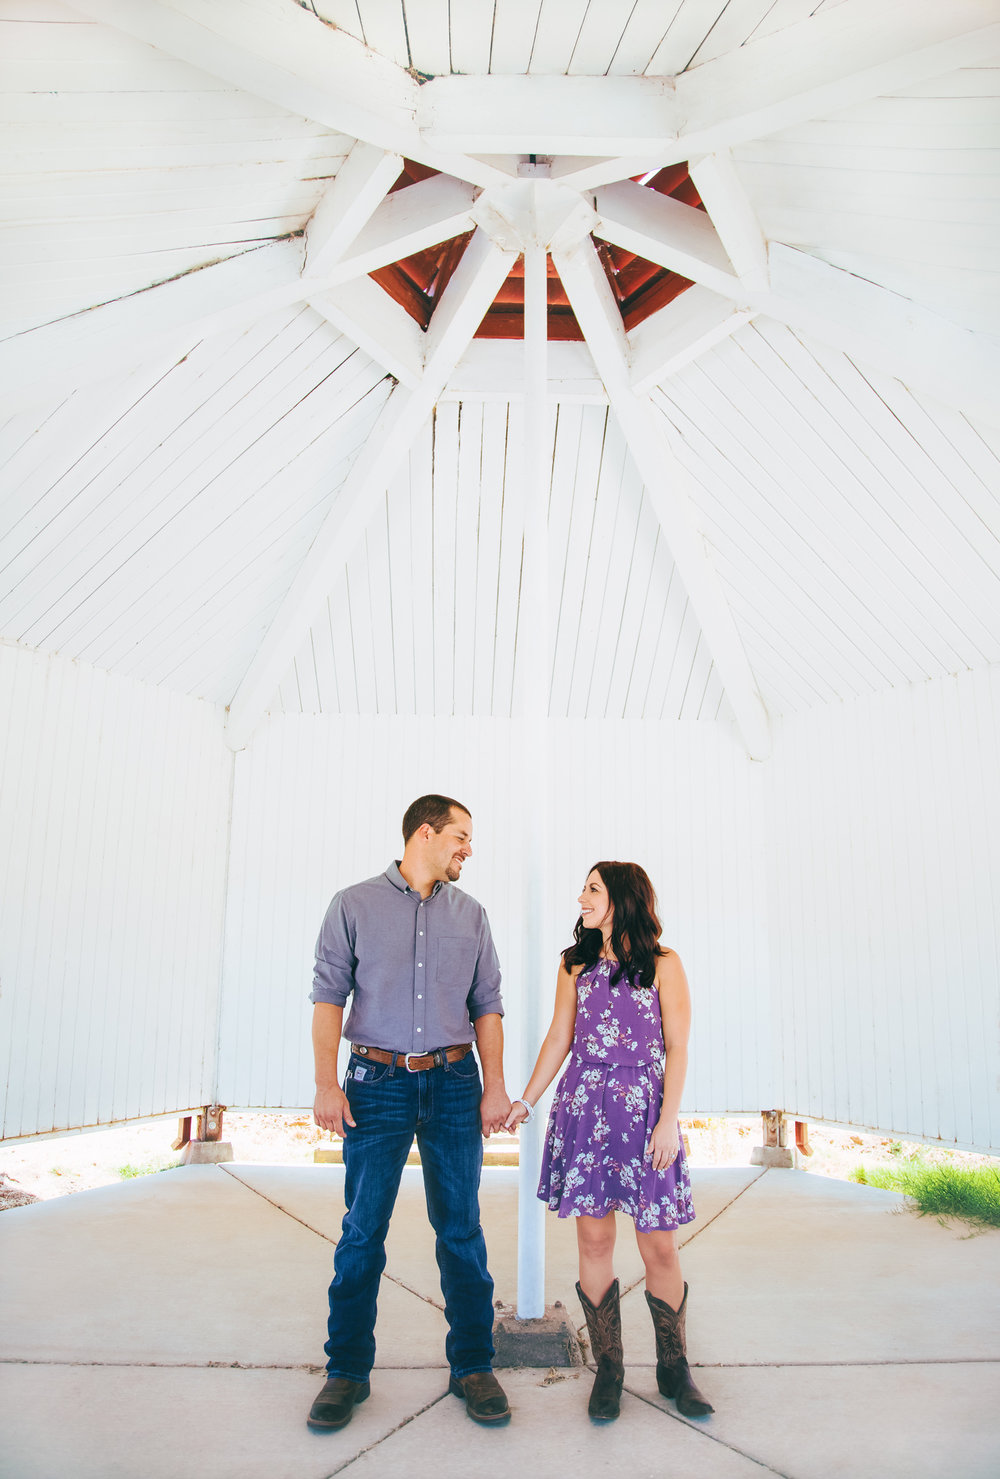 Gibson ranch engagement photography9.jpg